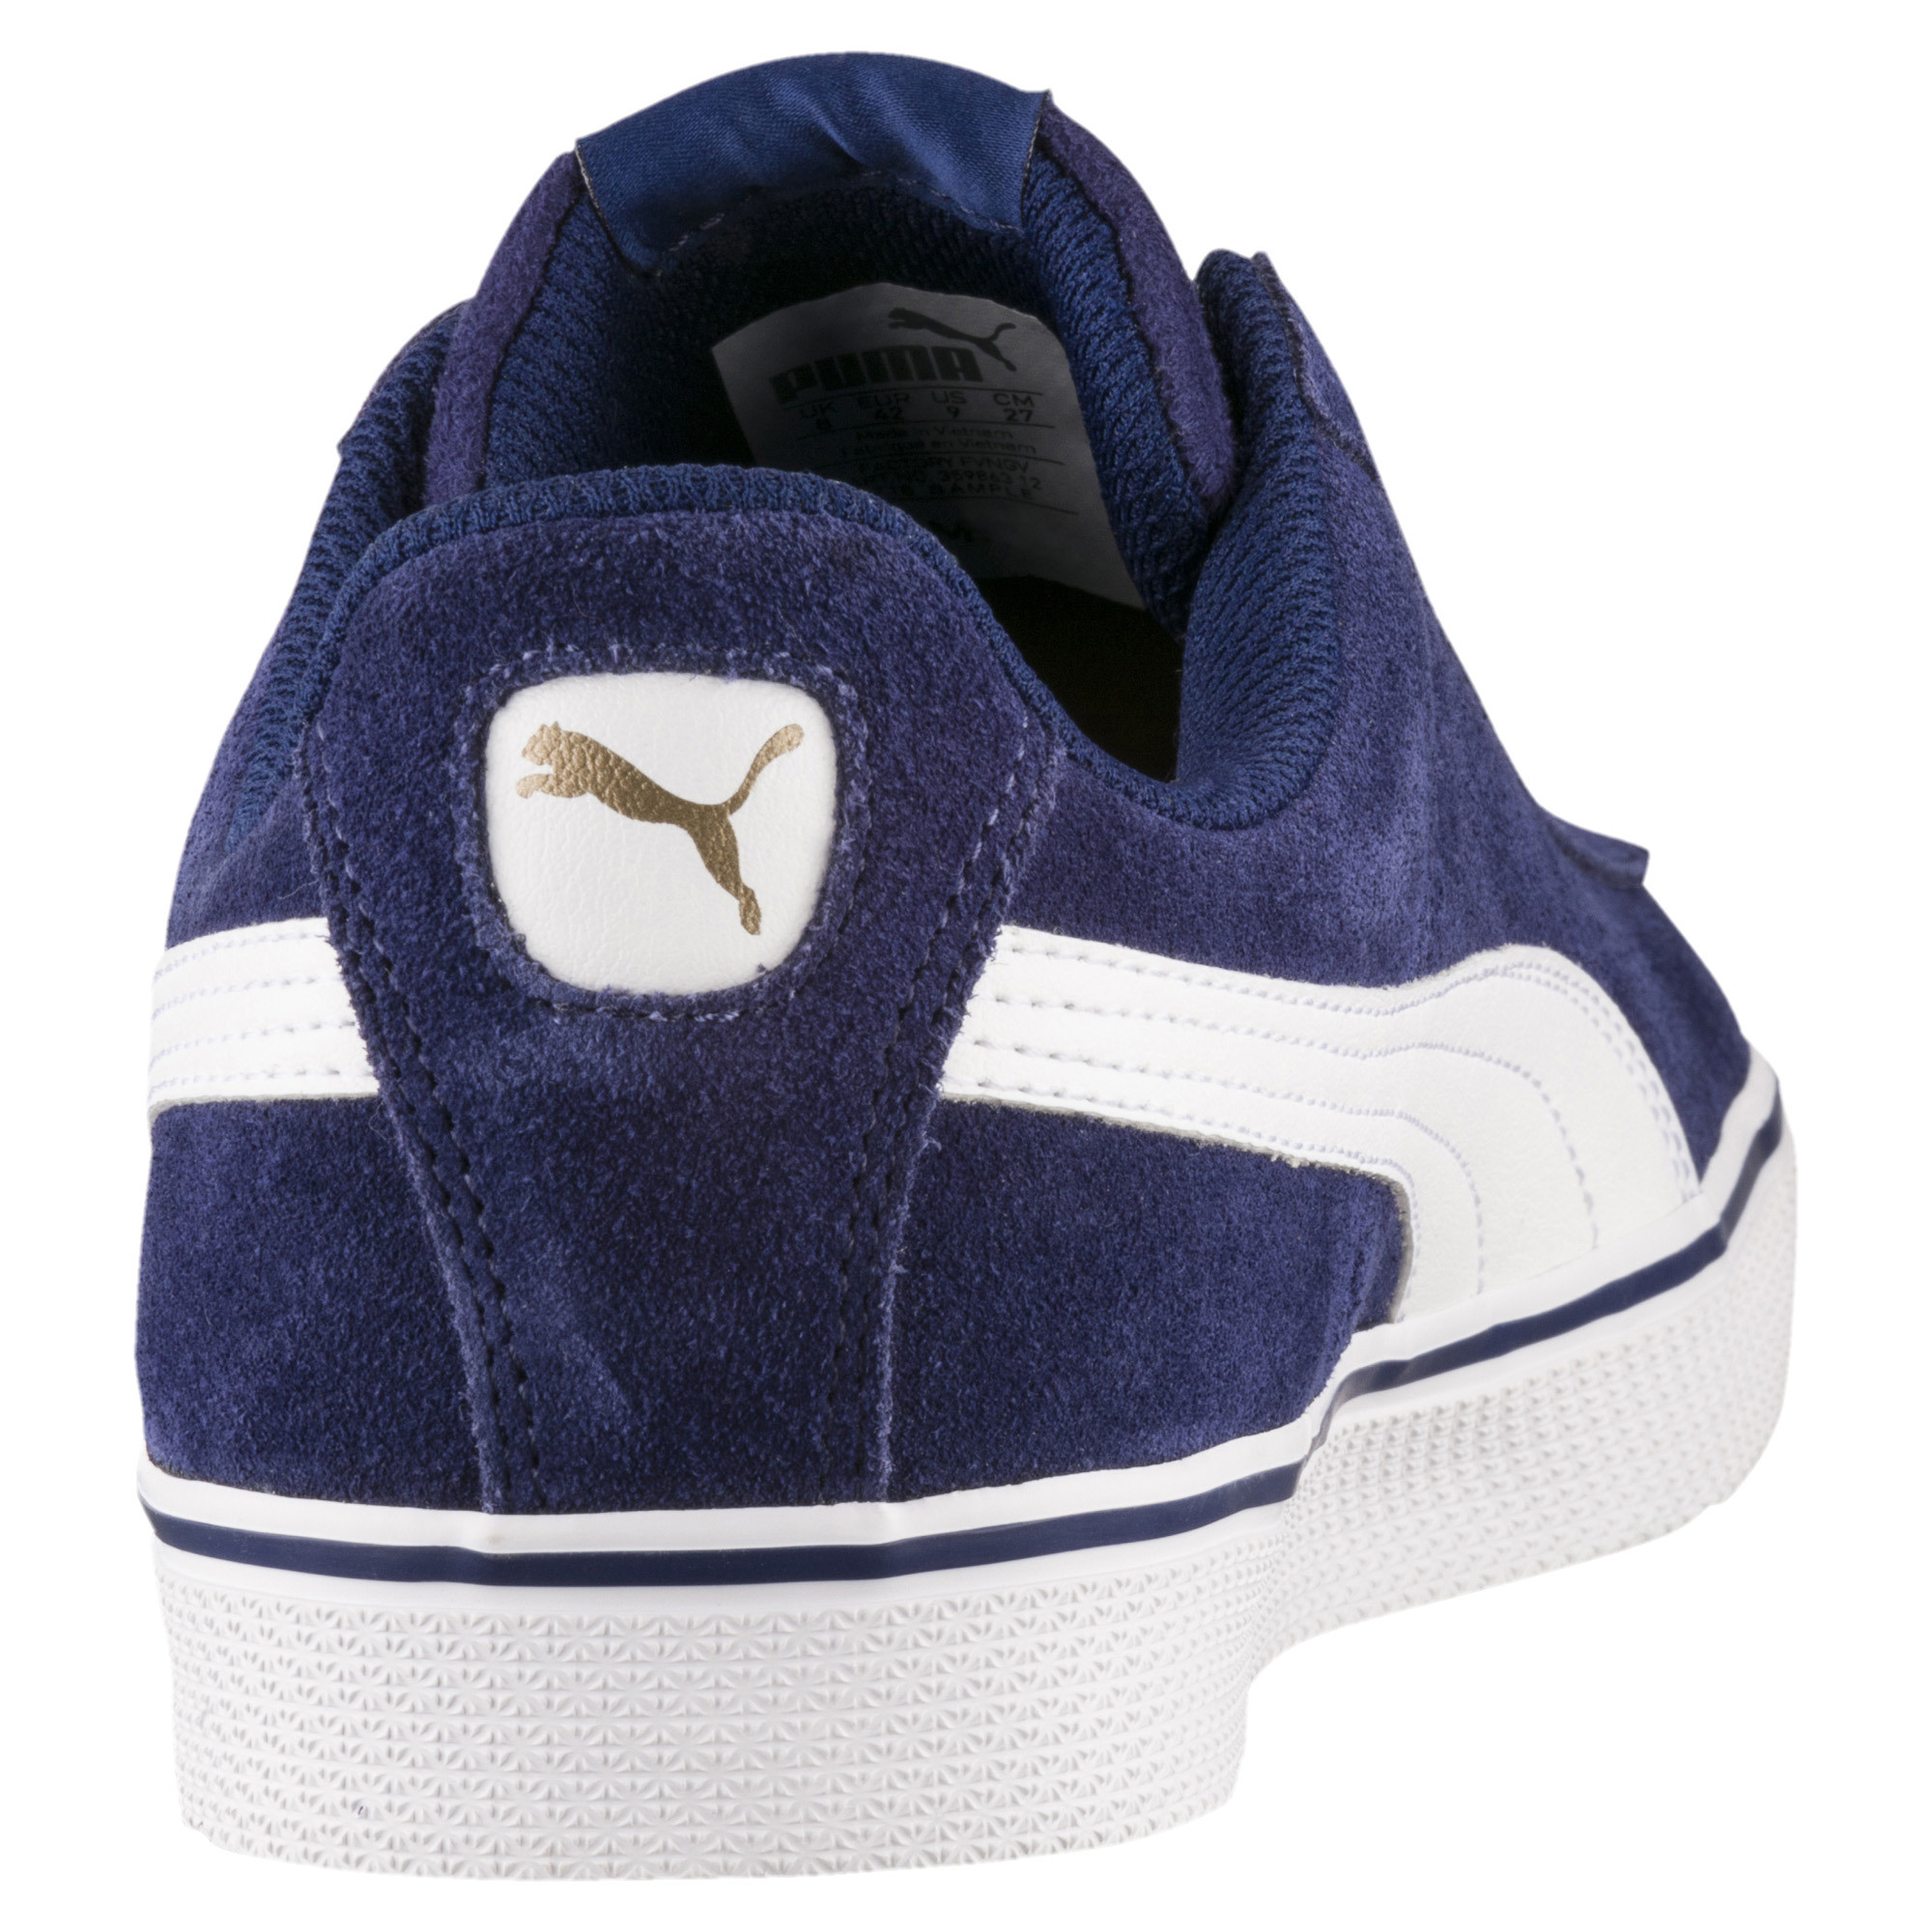 PUMA-Puma-1948-Vulc-Men-s-Sneakers-Men-Shoe-Basics thumbnail 8